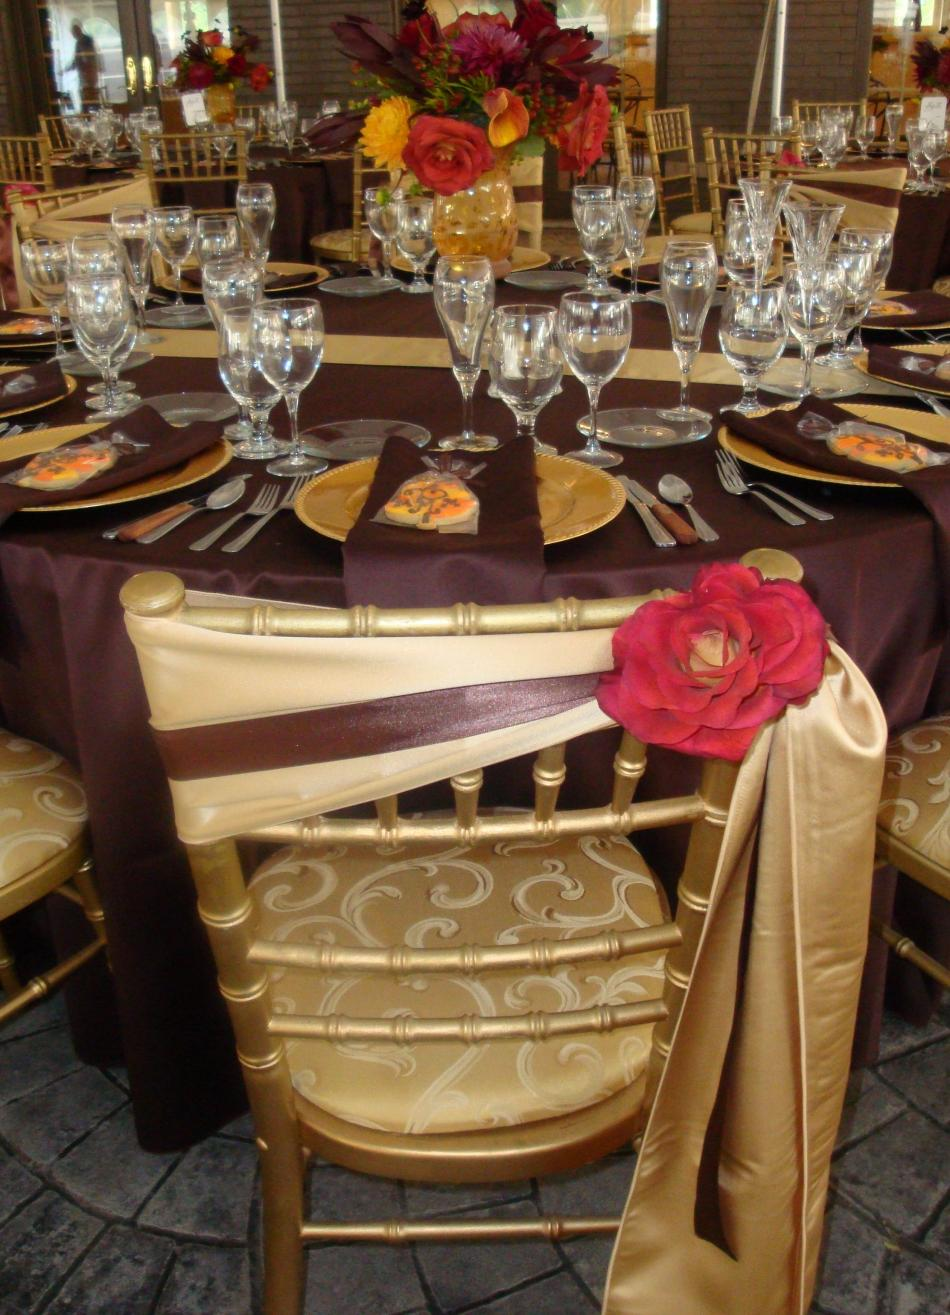 Jodys-pantry-catering-gold-burgendy-table-setting-red-flower-on-chair.original